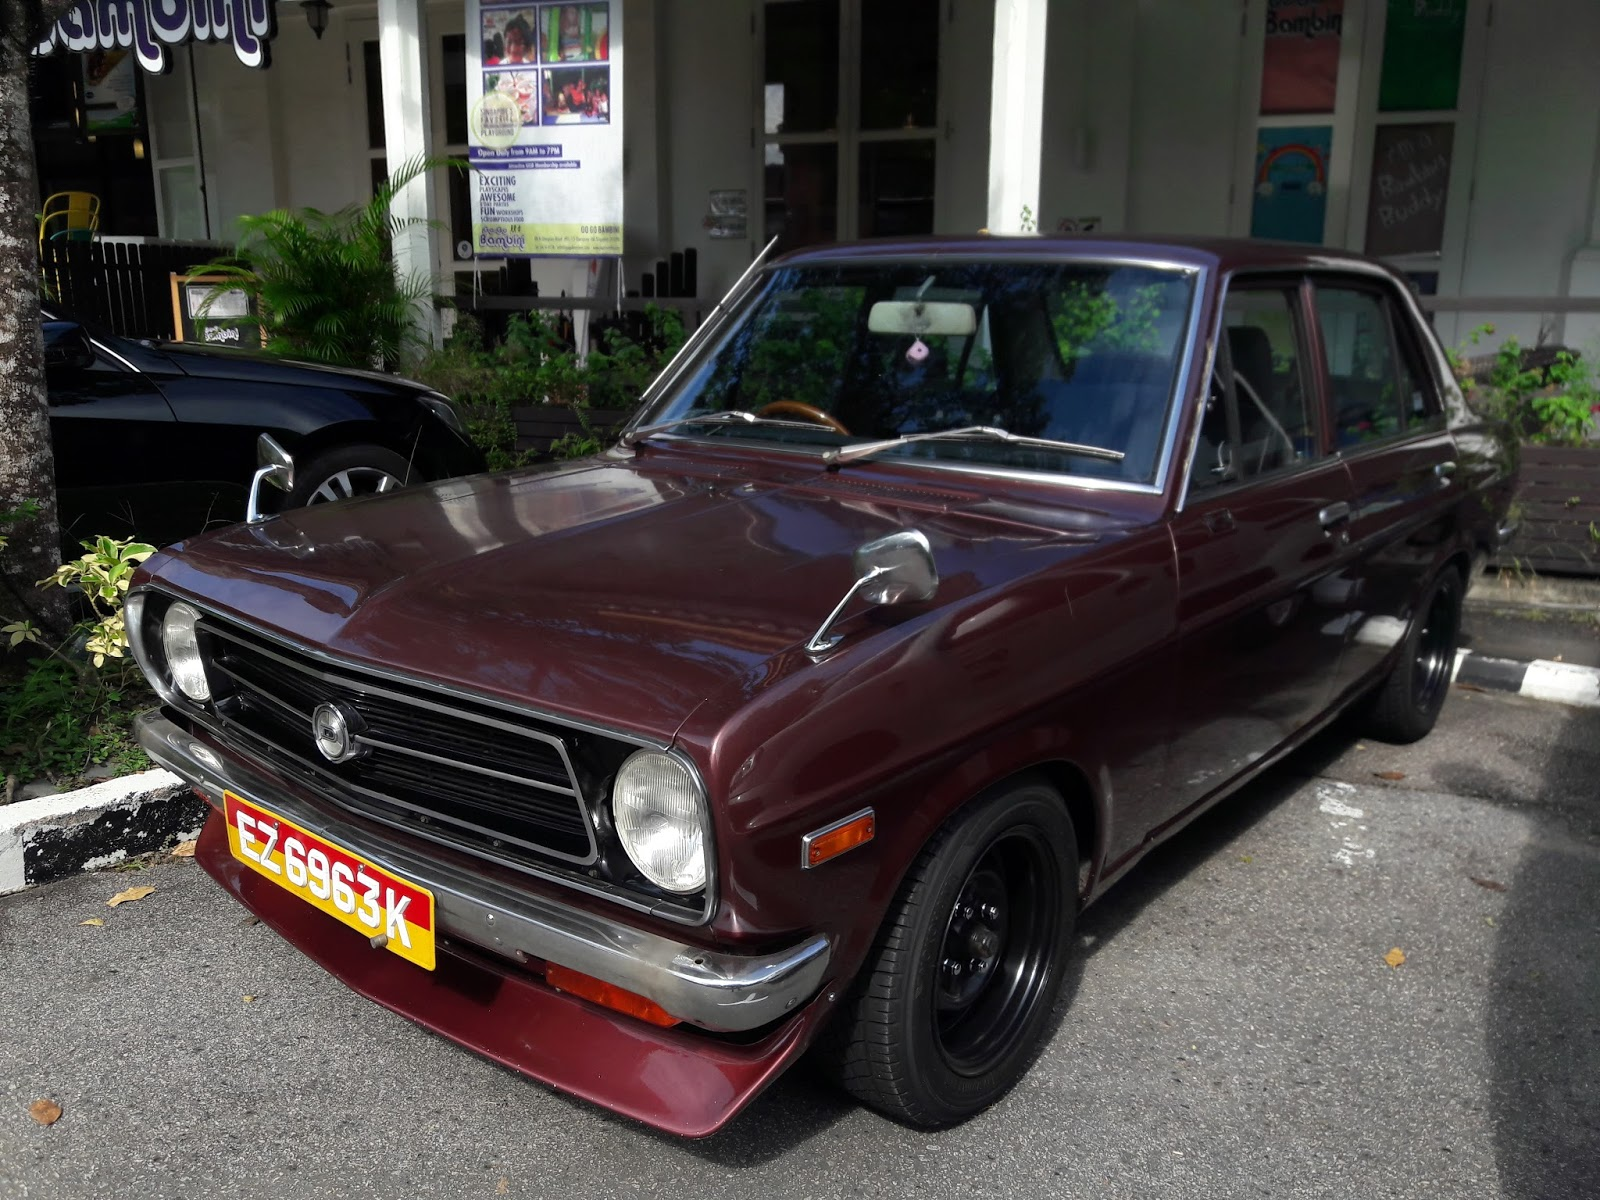 Singapore Vintage and Classic Cars: More than an old car #58: Datsun ...